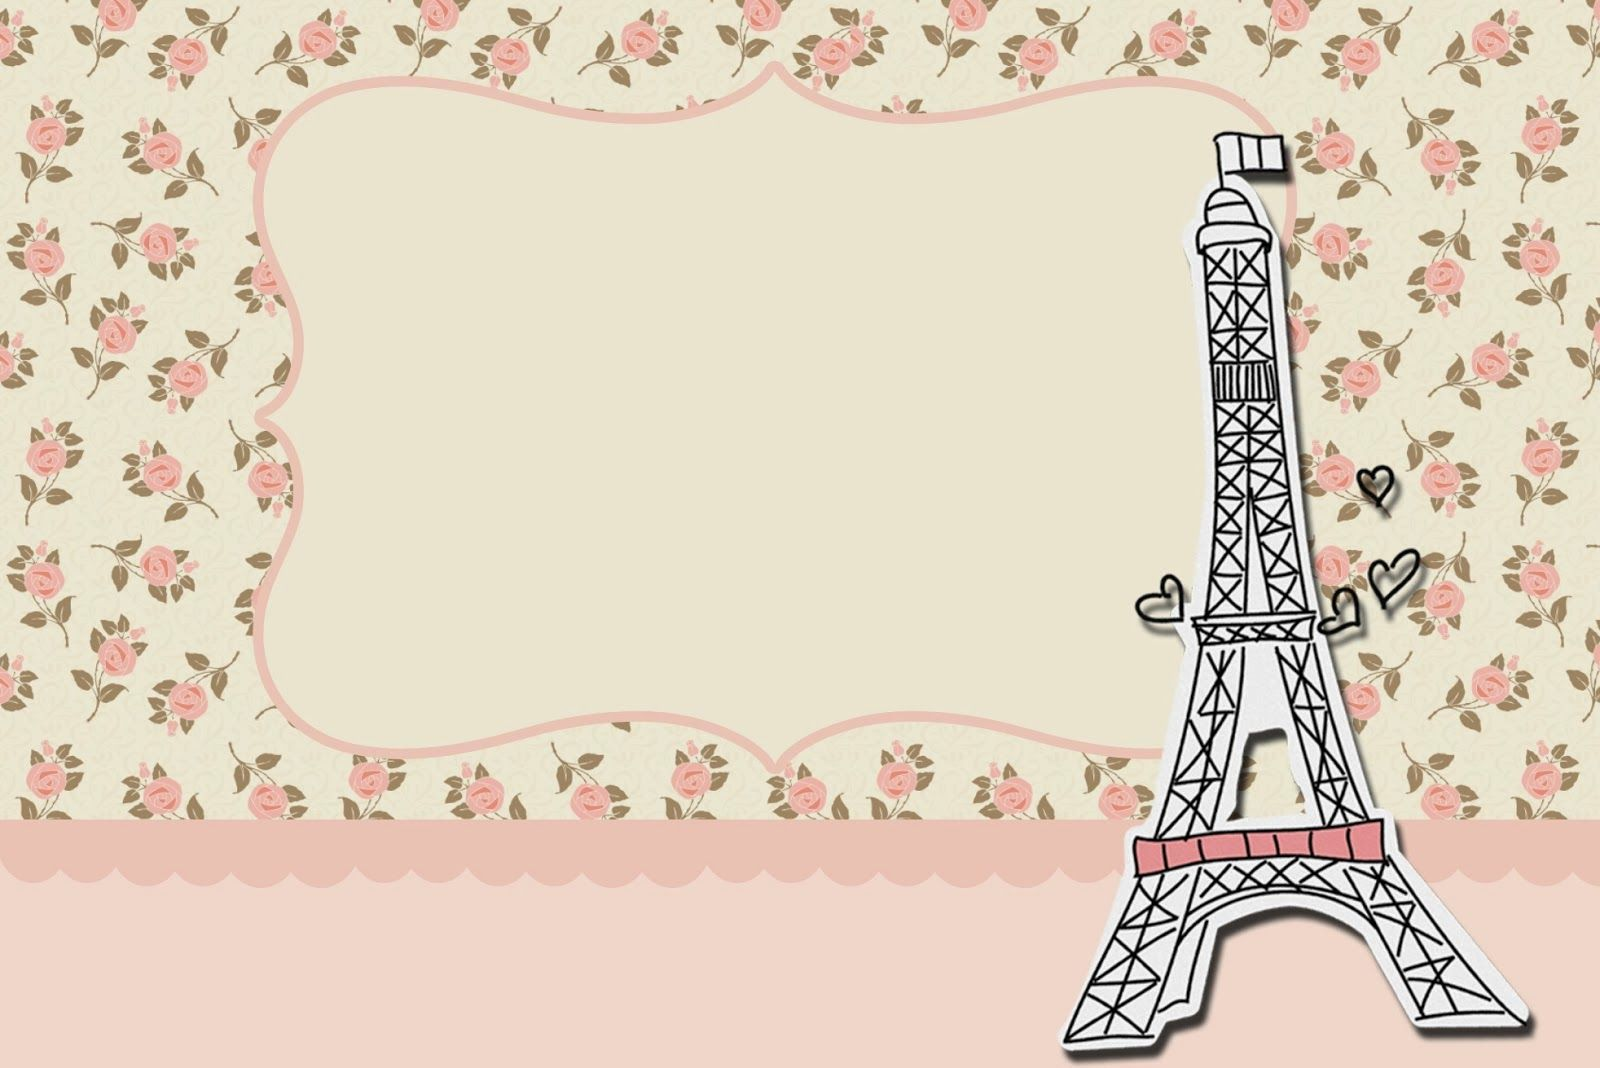 Paris With Roses Free Printable Cards Or Invitations Oh